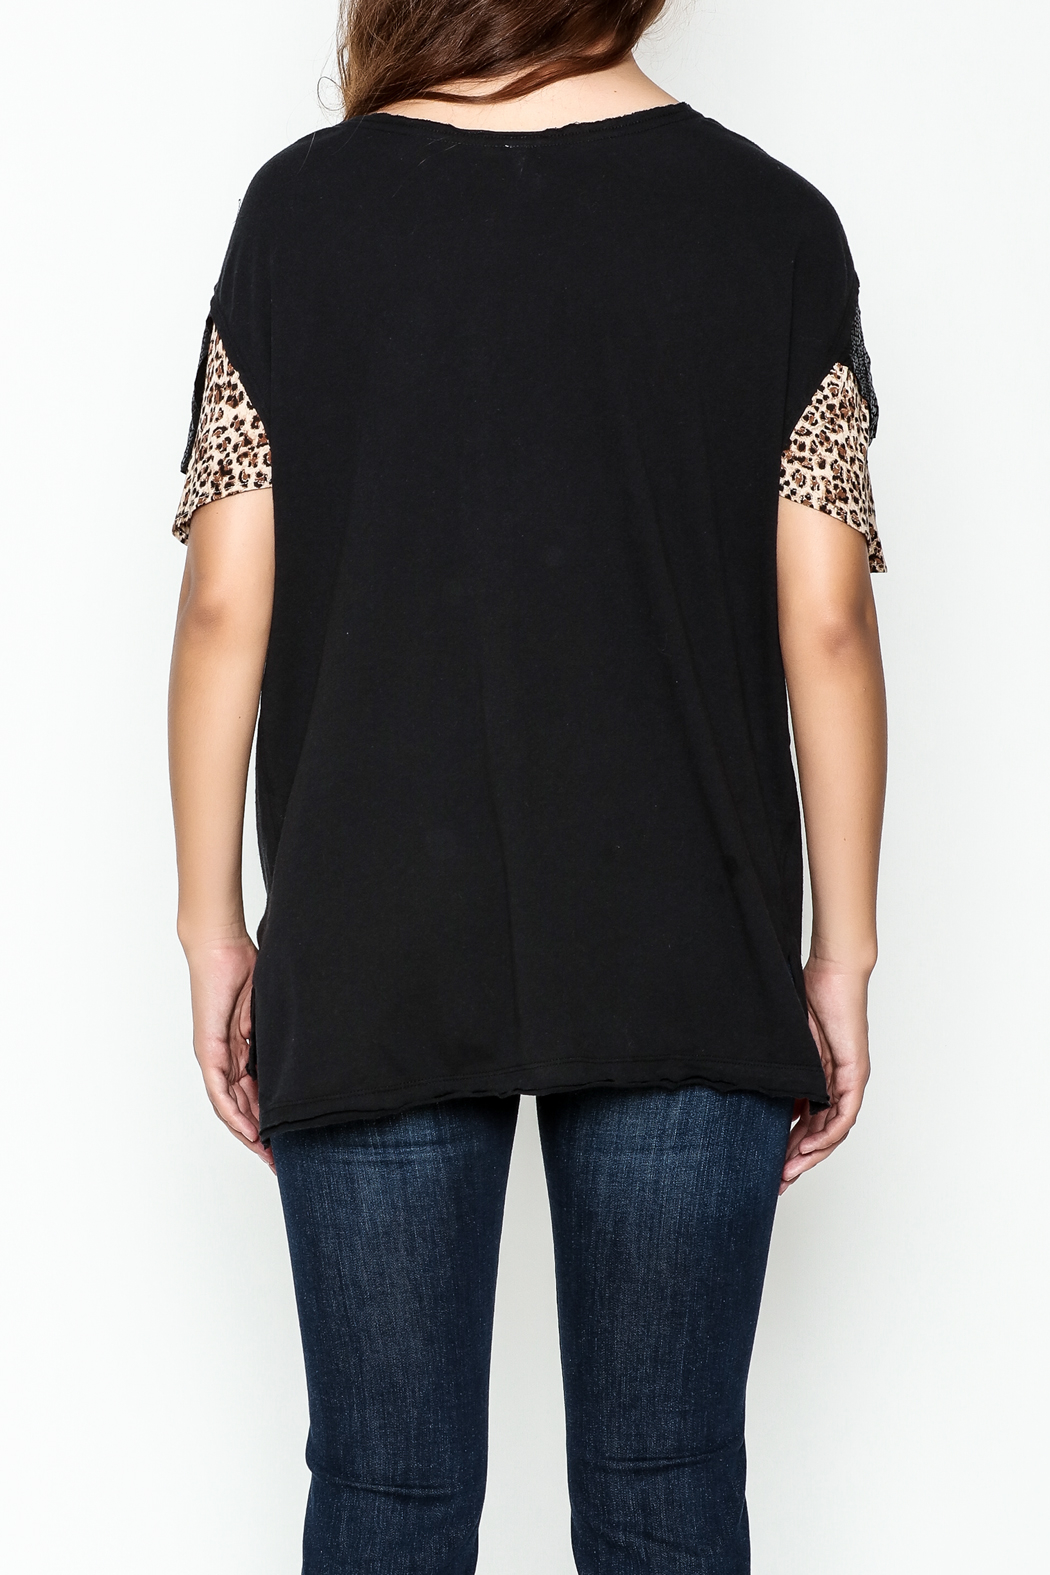 Free People Flutter Sleeve Graphic Tee - Back Cropped Image